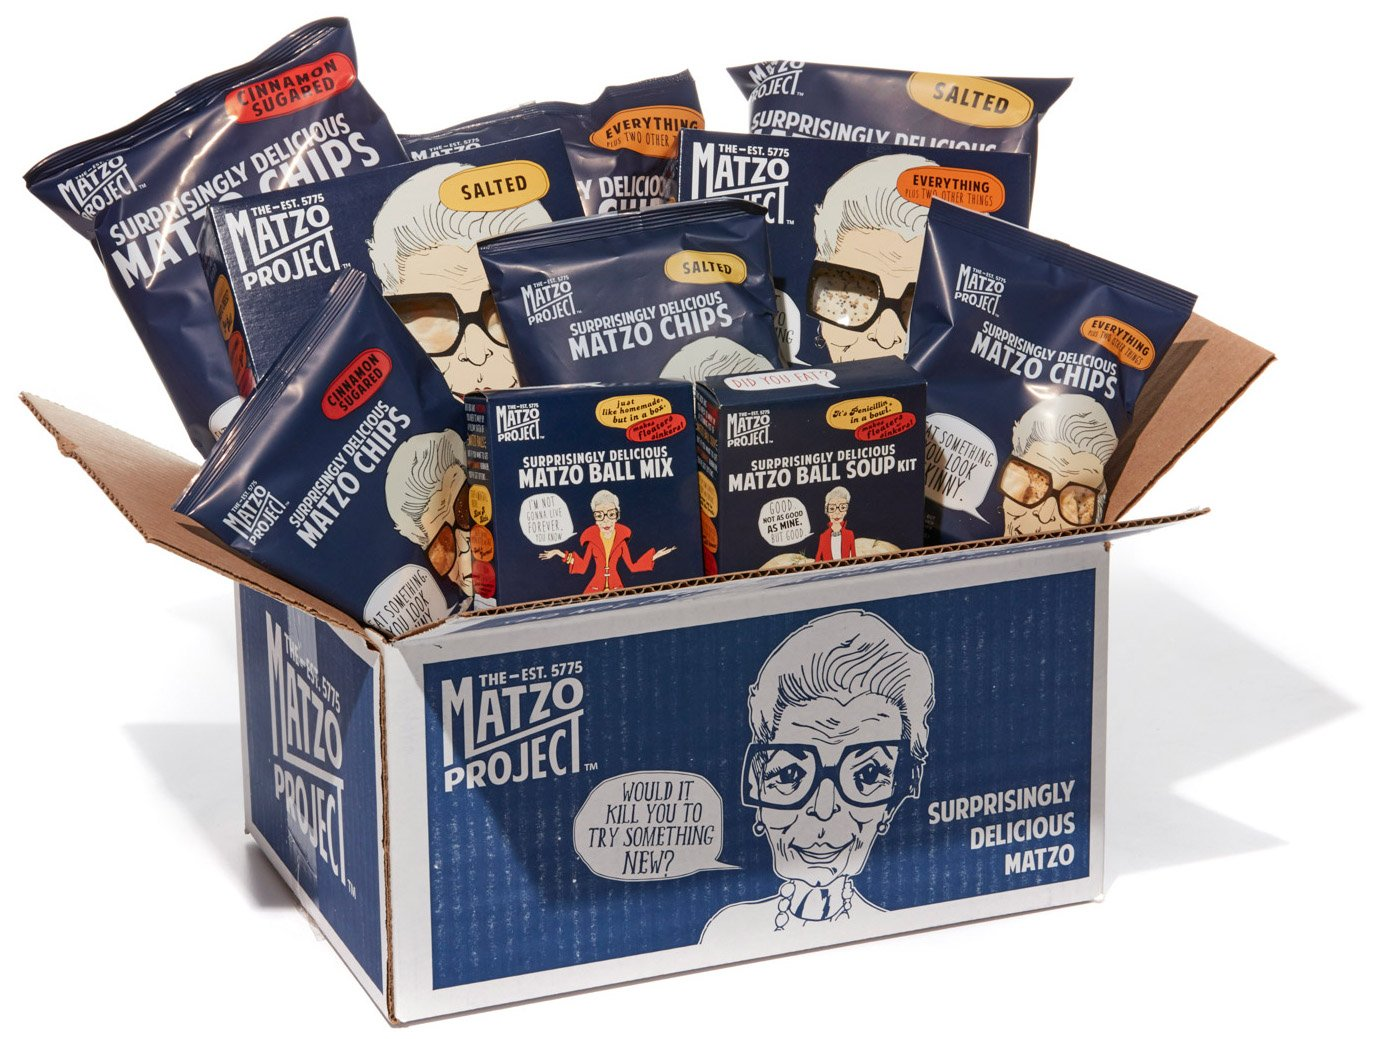 The Whole Megillah, Everything Matzo, Salted Matzo, Matzo Chips (Everything, Salted, Cinnamon Sugared), Matzo Ball Mix and Soup Kit from The Matzo Project, Contains 10 Items